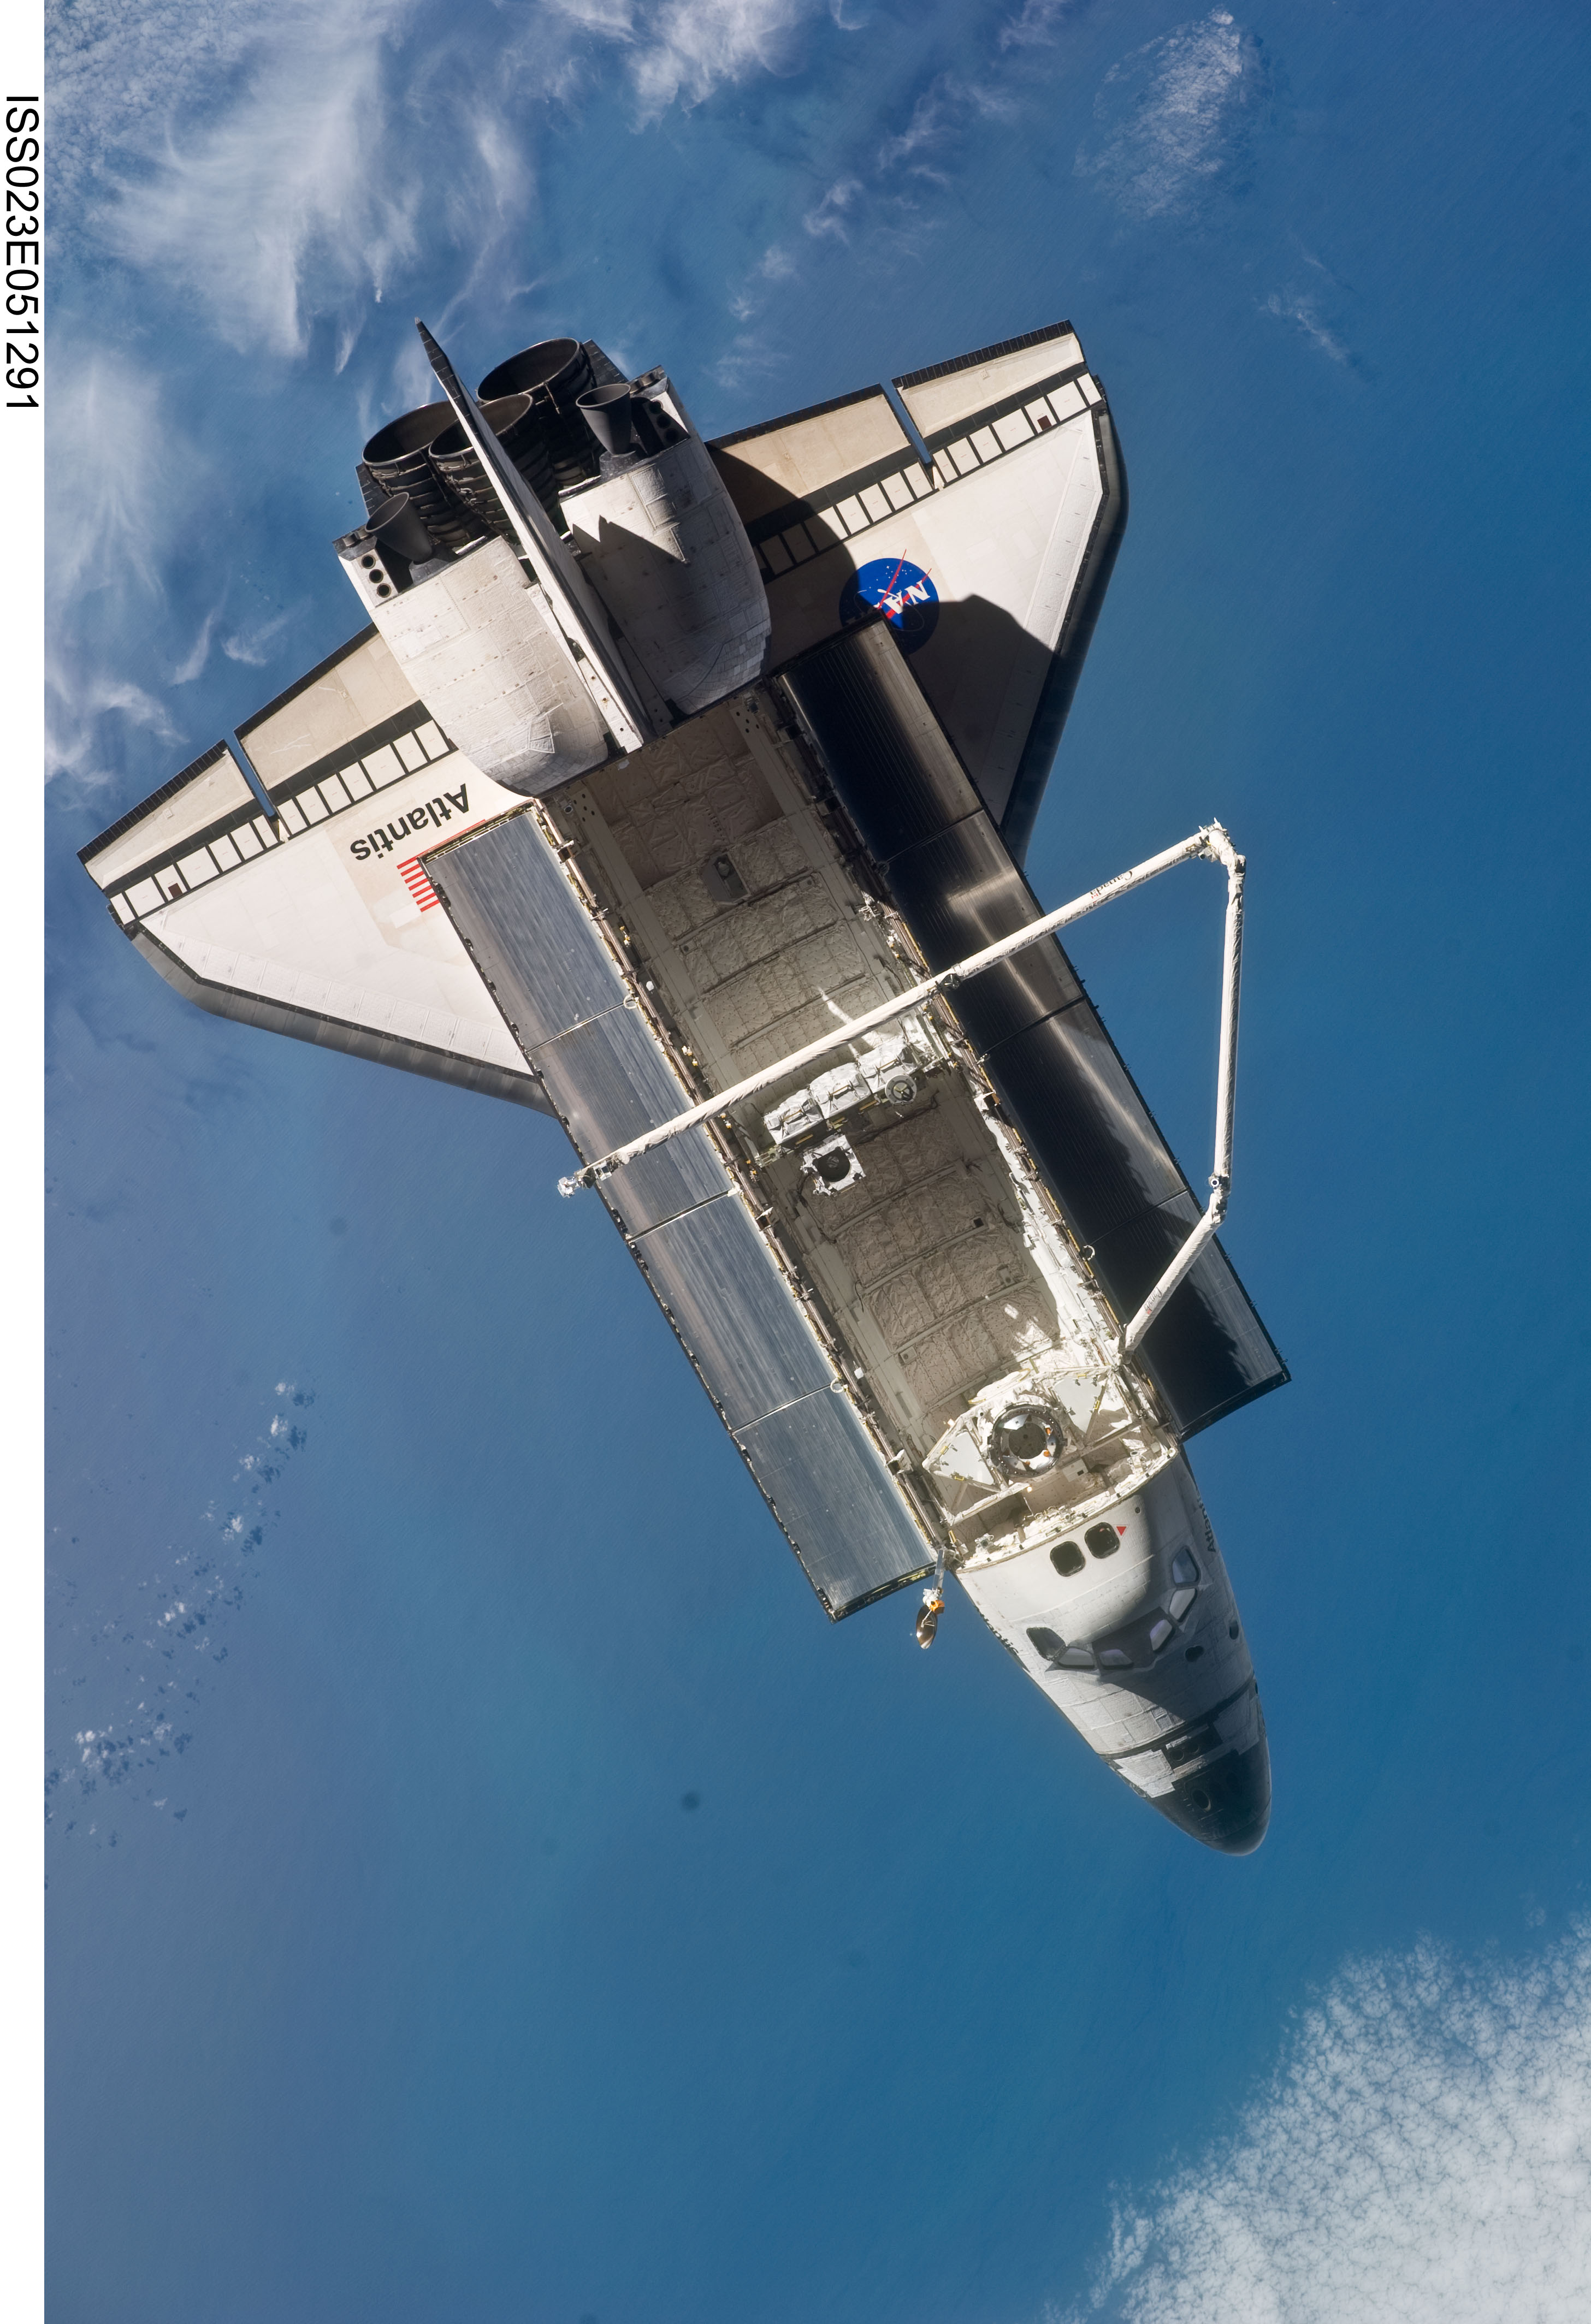 separation space shuttle - photo #31